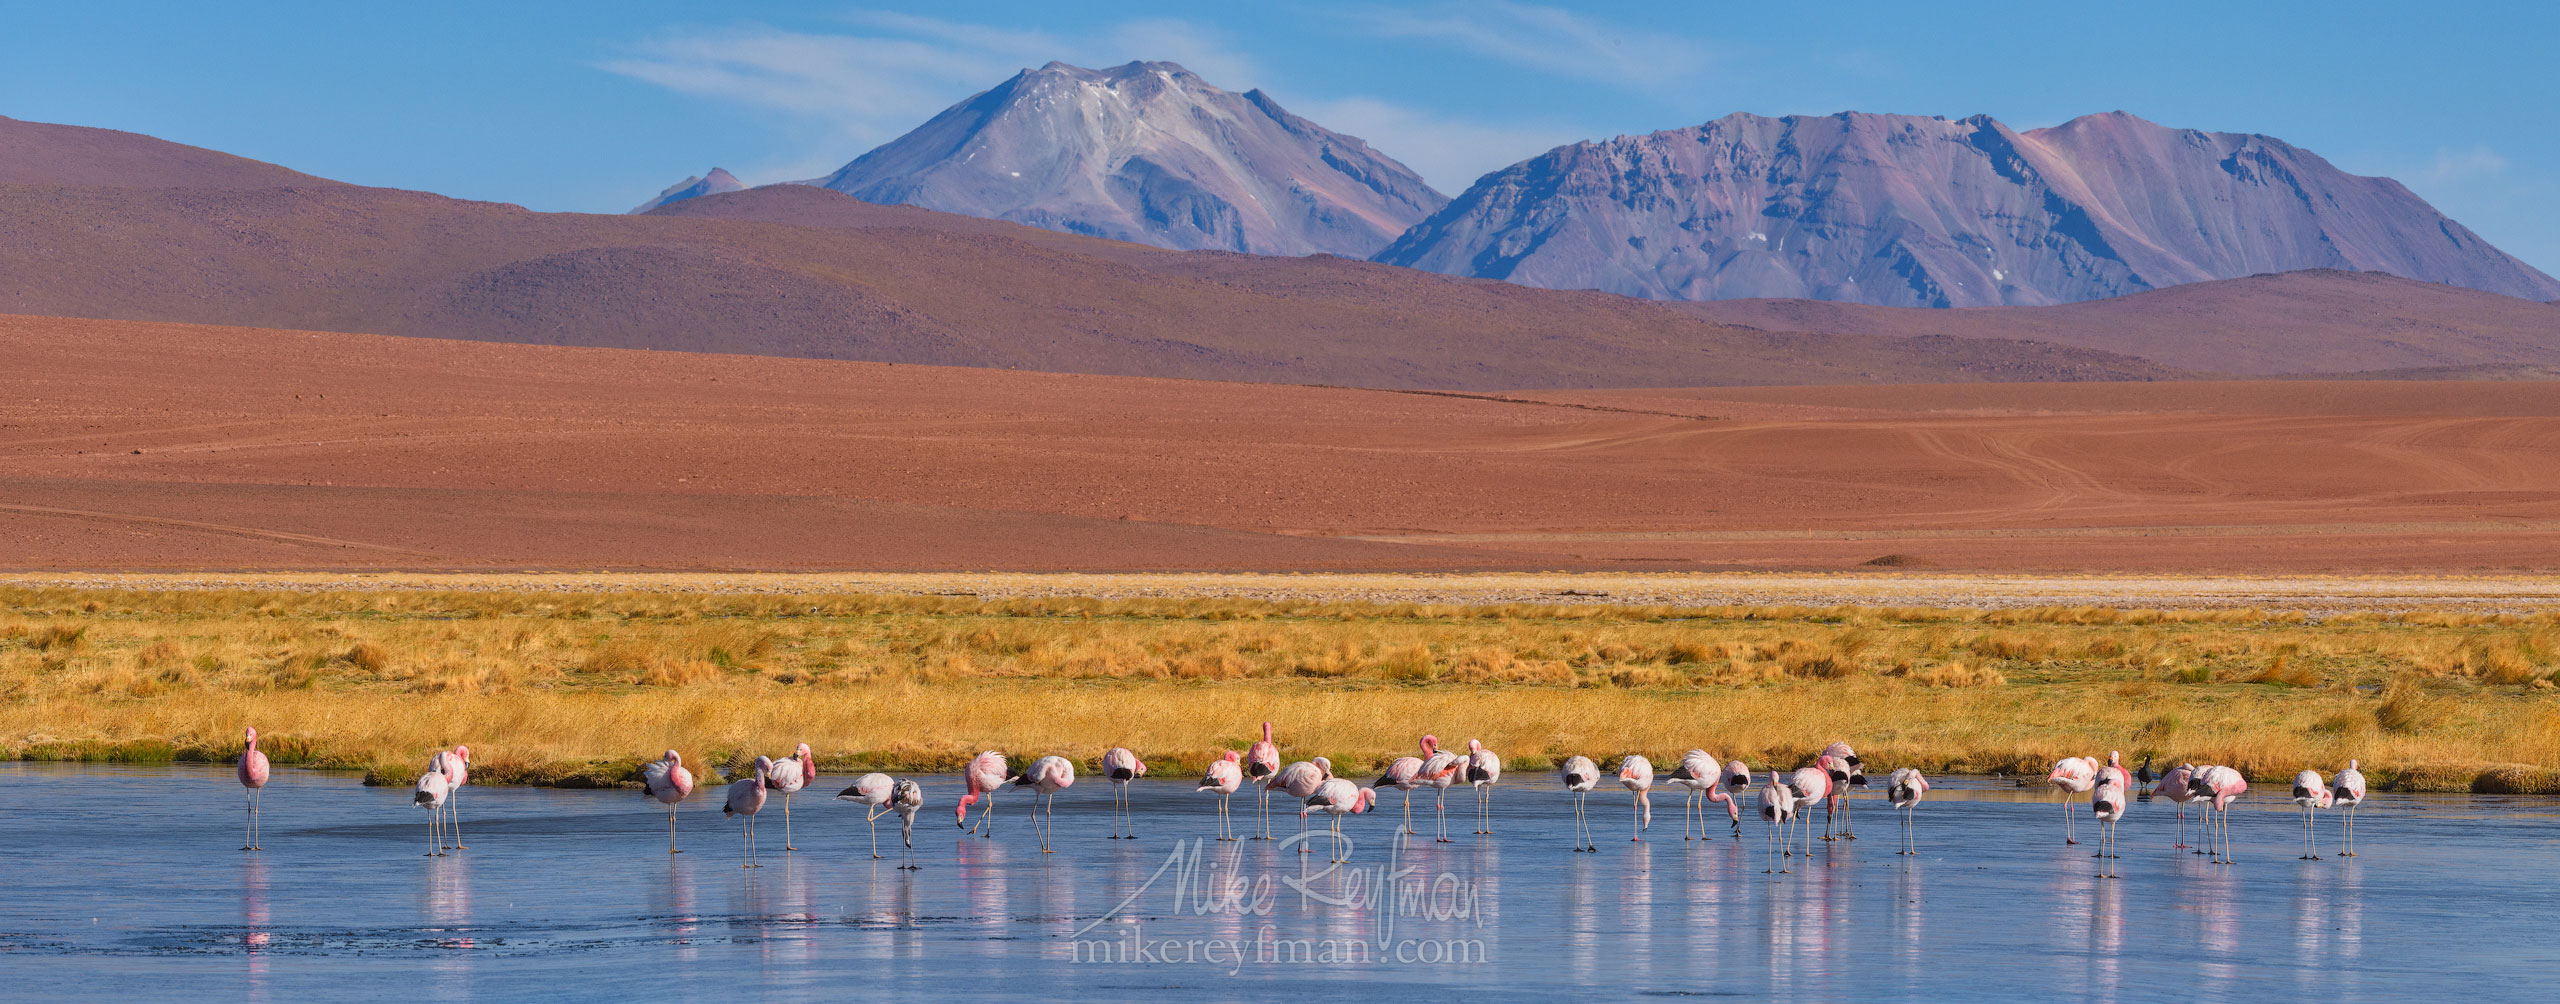 Flamingos in the Putana river. Rio Putana, San Pedro de Atacama, Atacama Desert, Antofagasta Region, Chile AA1-D1D8940_Pano_1x2.55 - Atacama and Altiplano. The Driest Desert and The High Plain - Mike Reyfman Photography